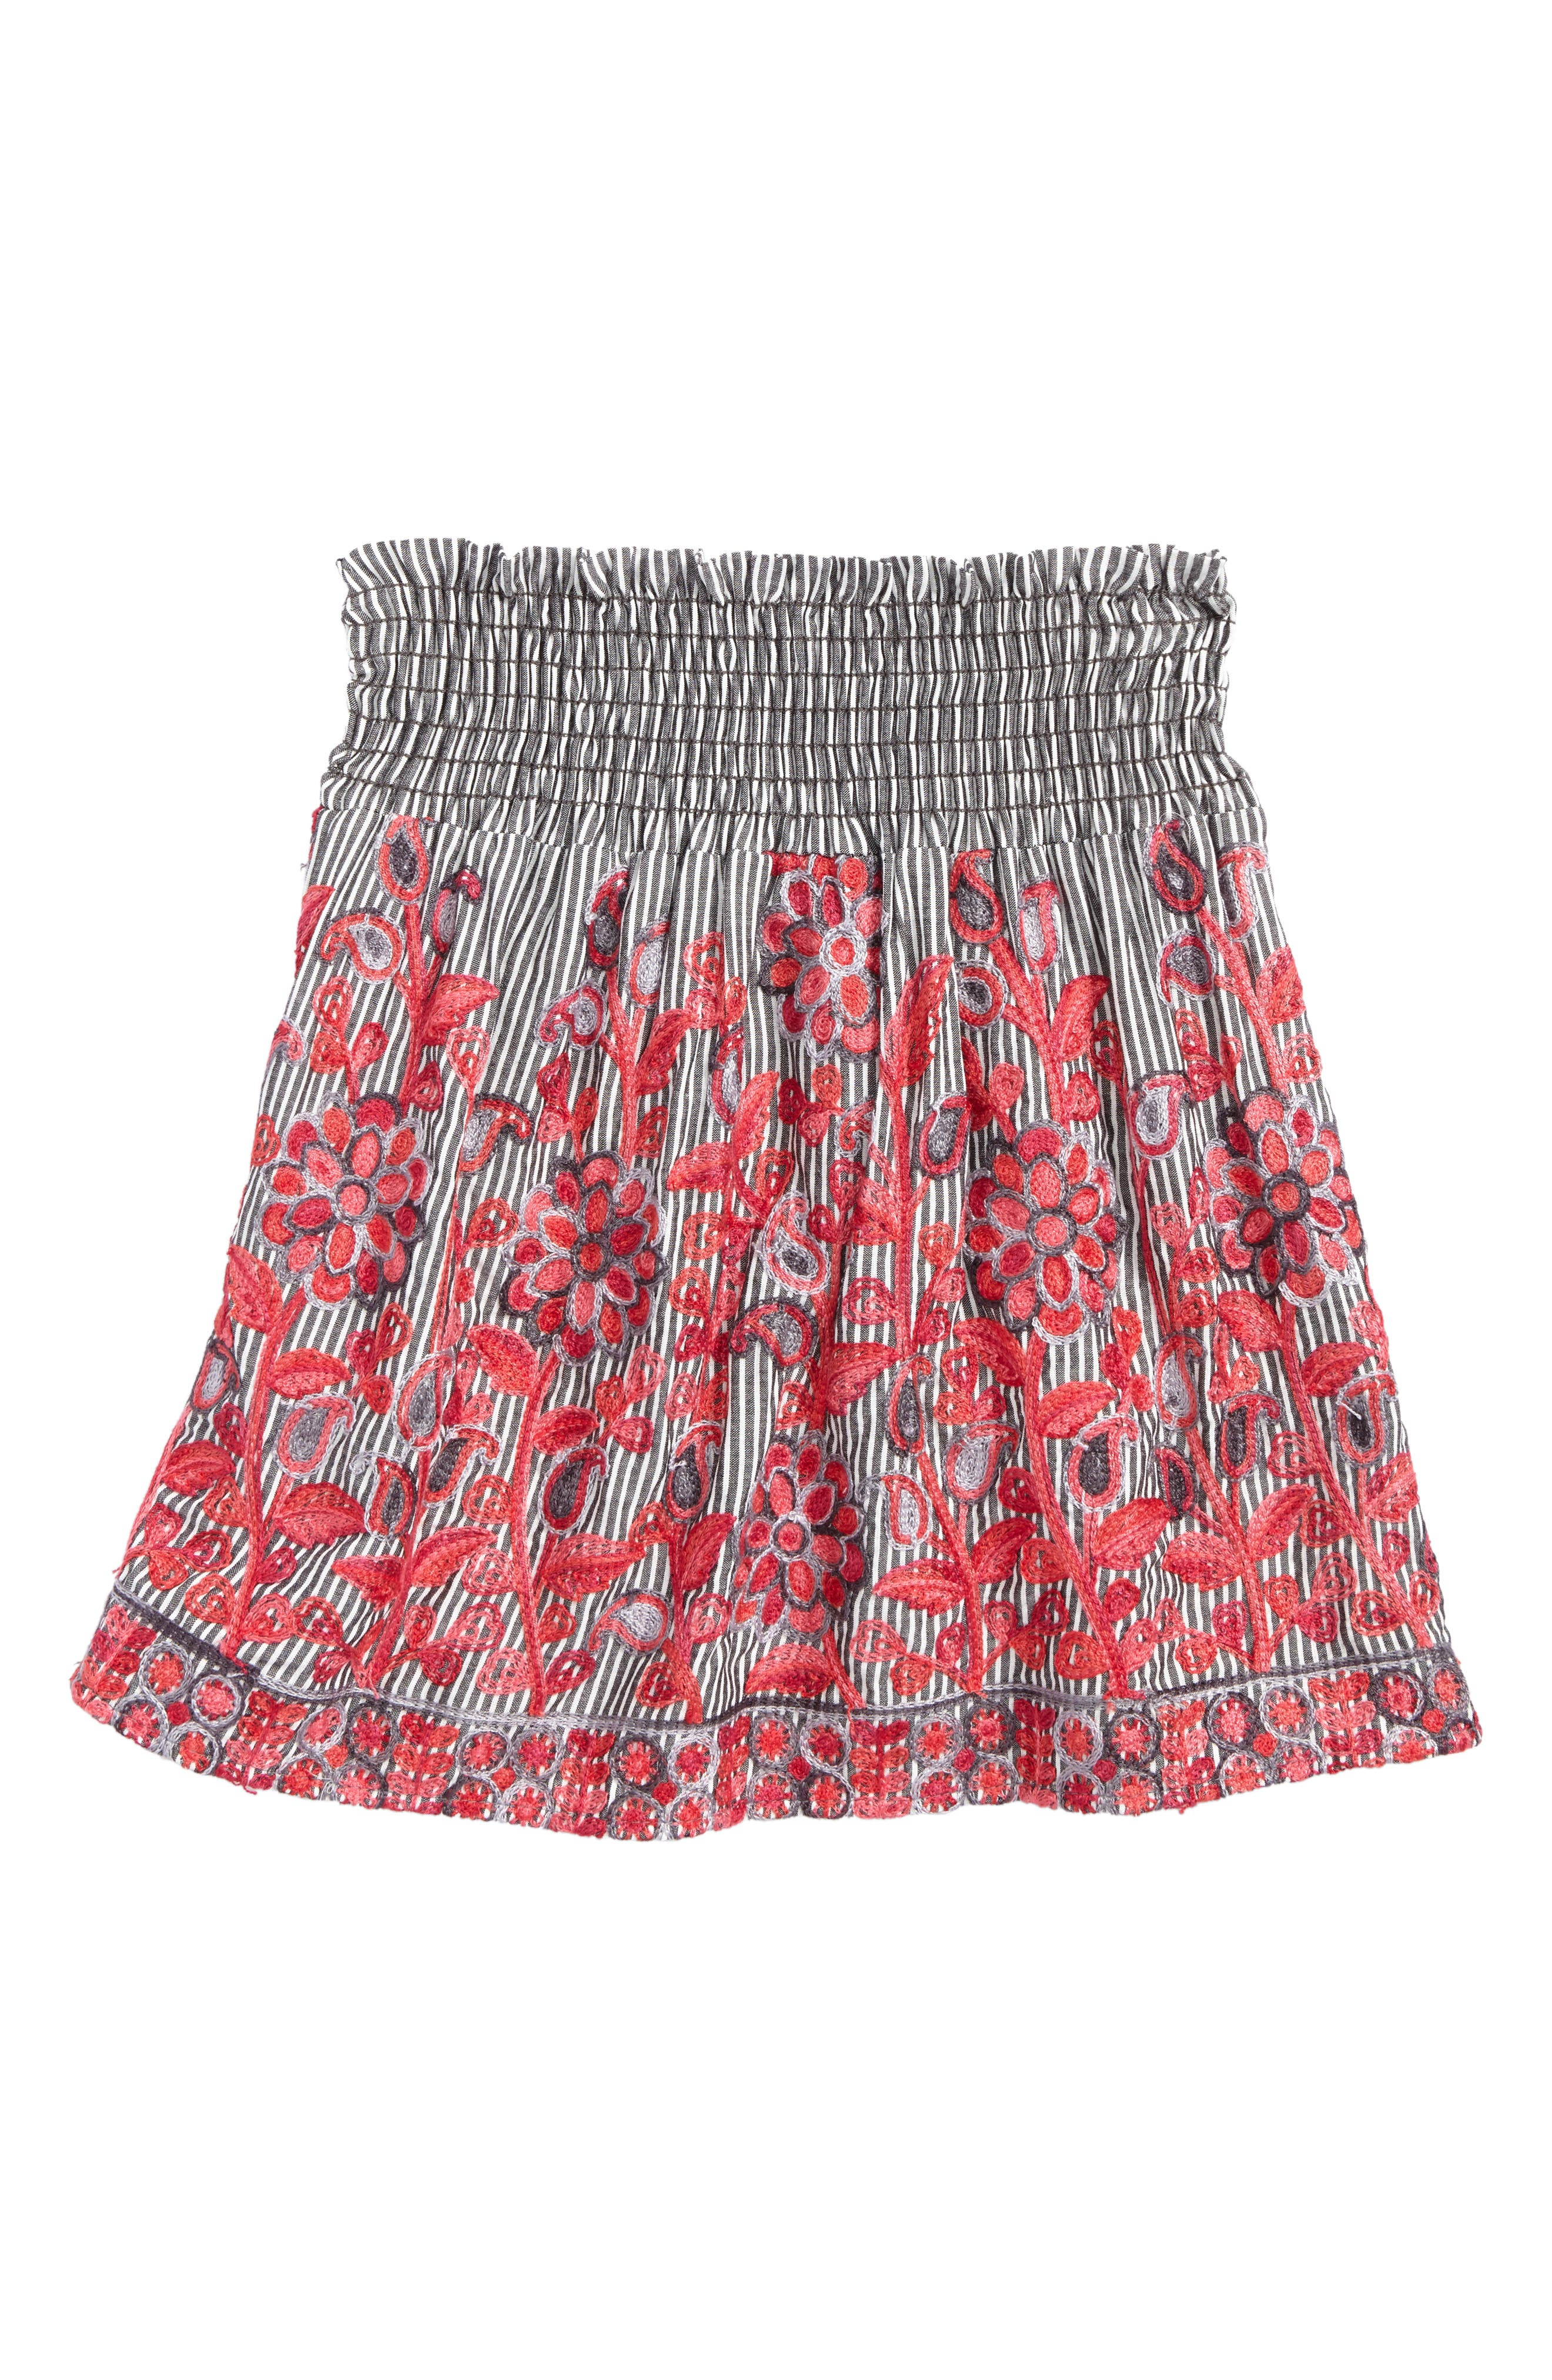 Flower Embroidered Skirt,                         Main,                         color, Grey Ivory